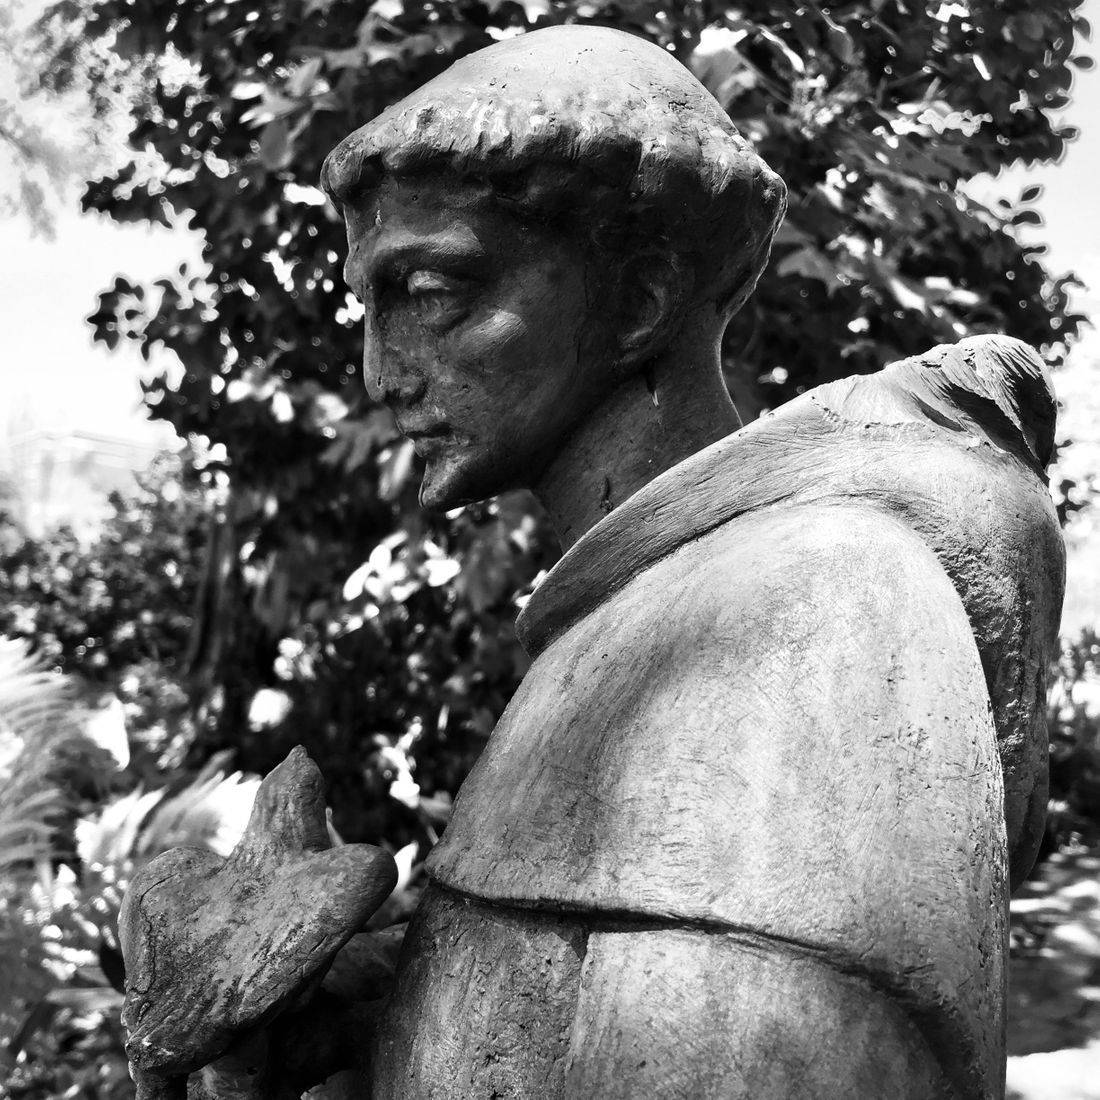 Gardens, Church, Cemetery, Concord, North Carolina, Flowers, Saint, Statue